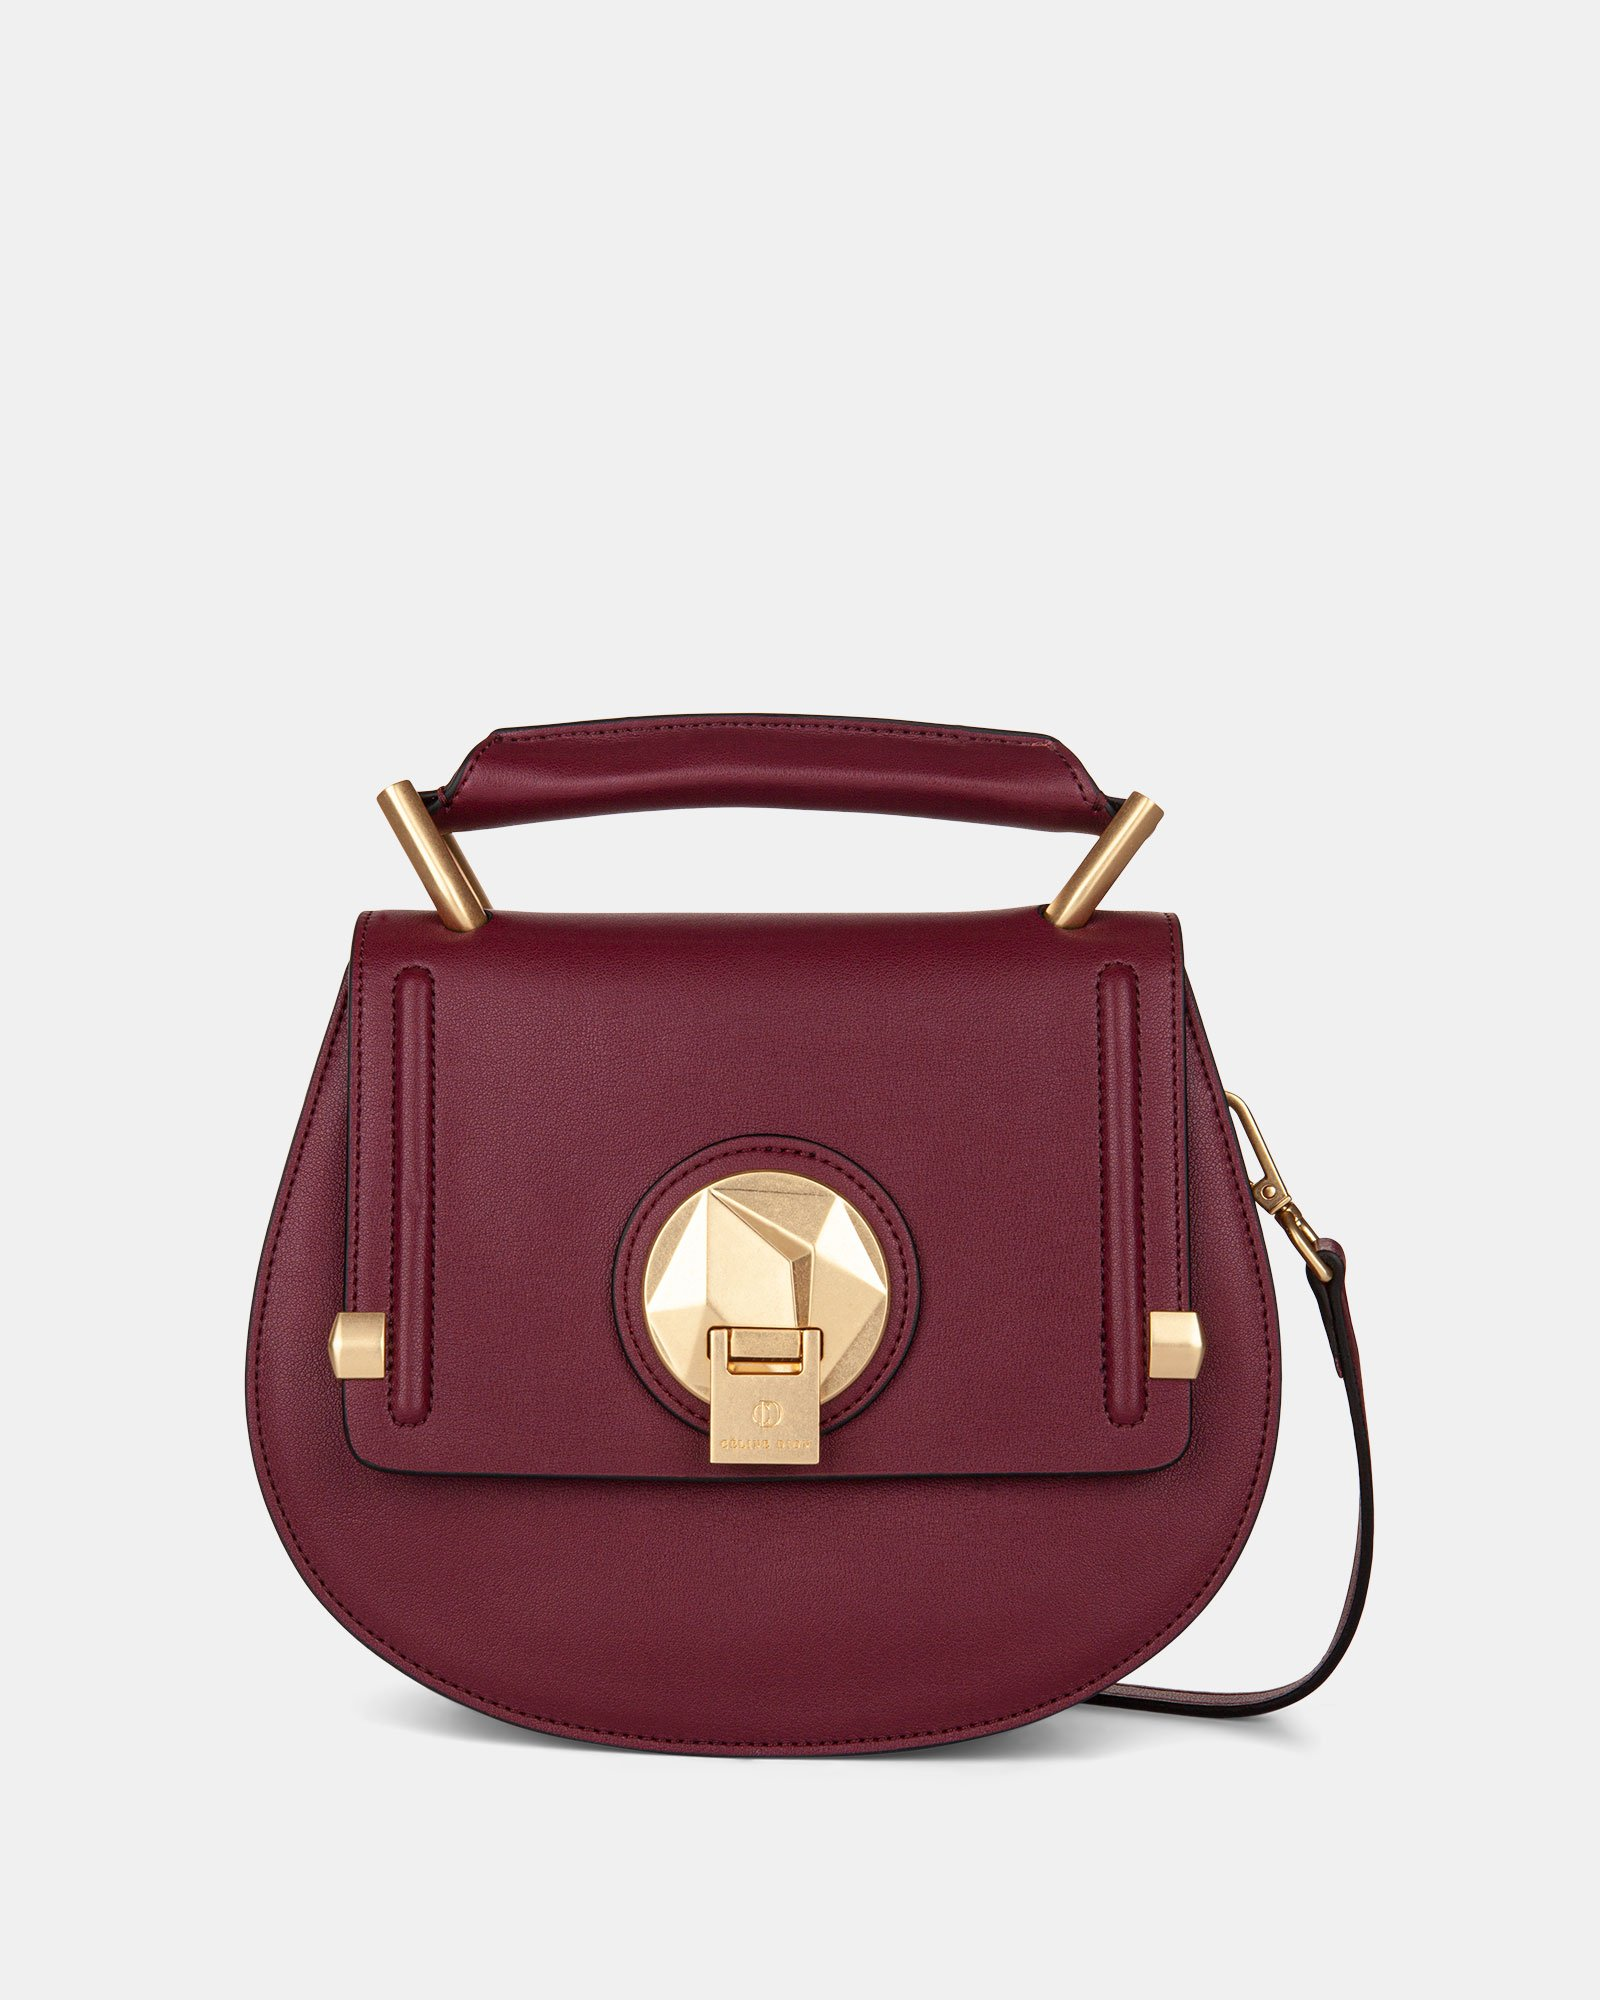 OCTAVE - LEATHER HANDLE BAG with Removable and adjustable strap - BORDO - Céline Dion - Zoom